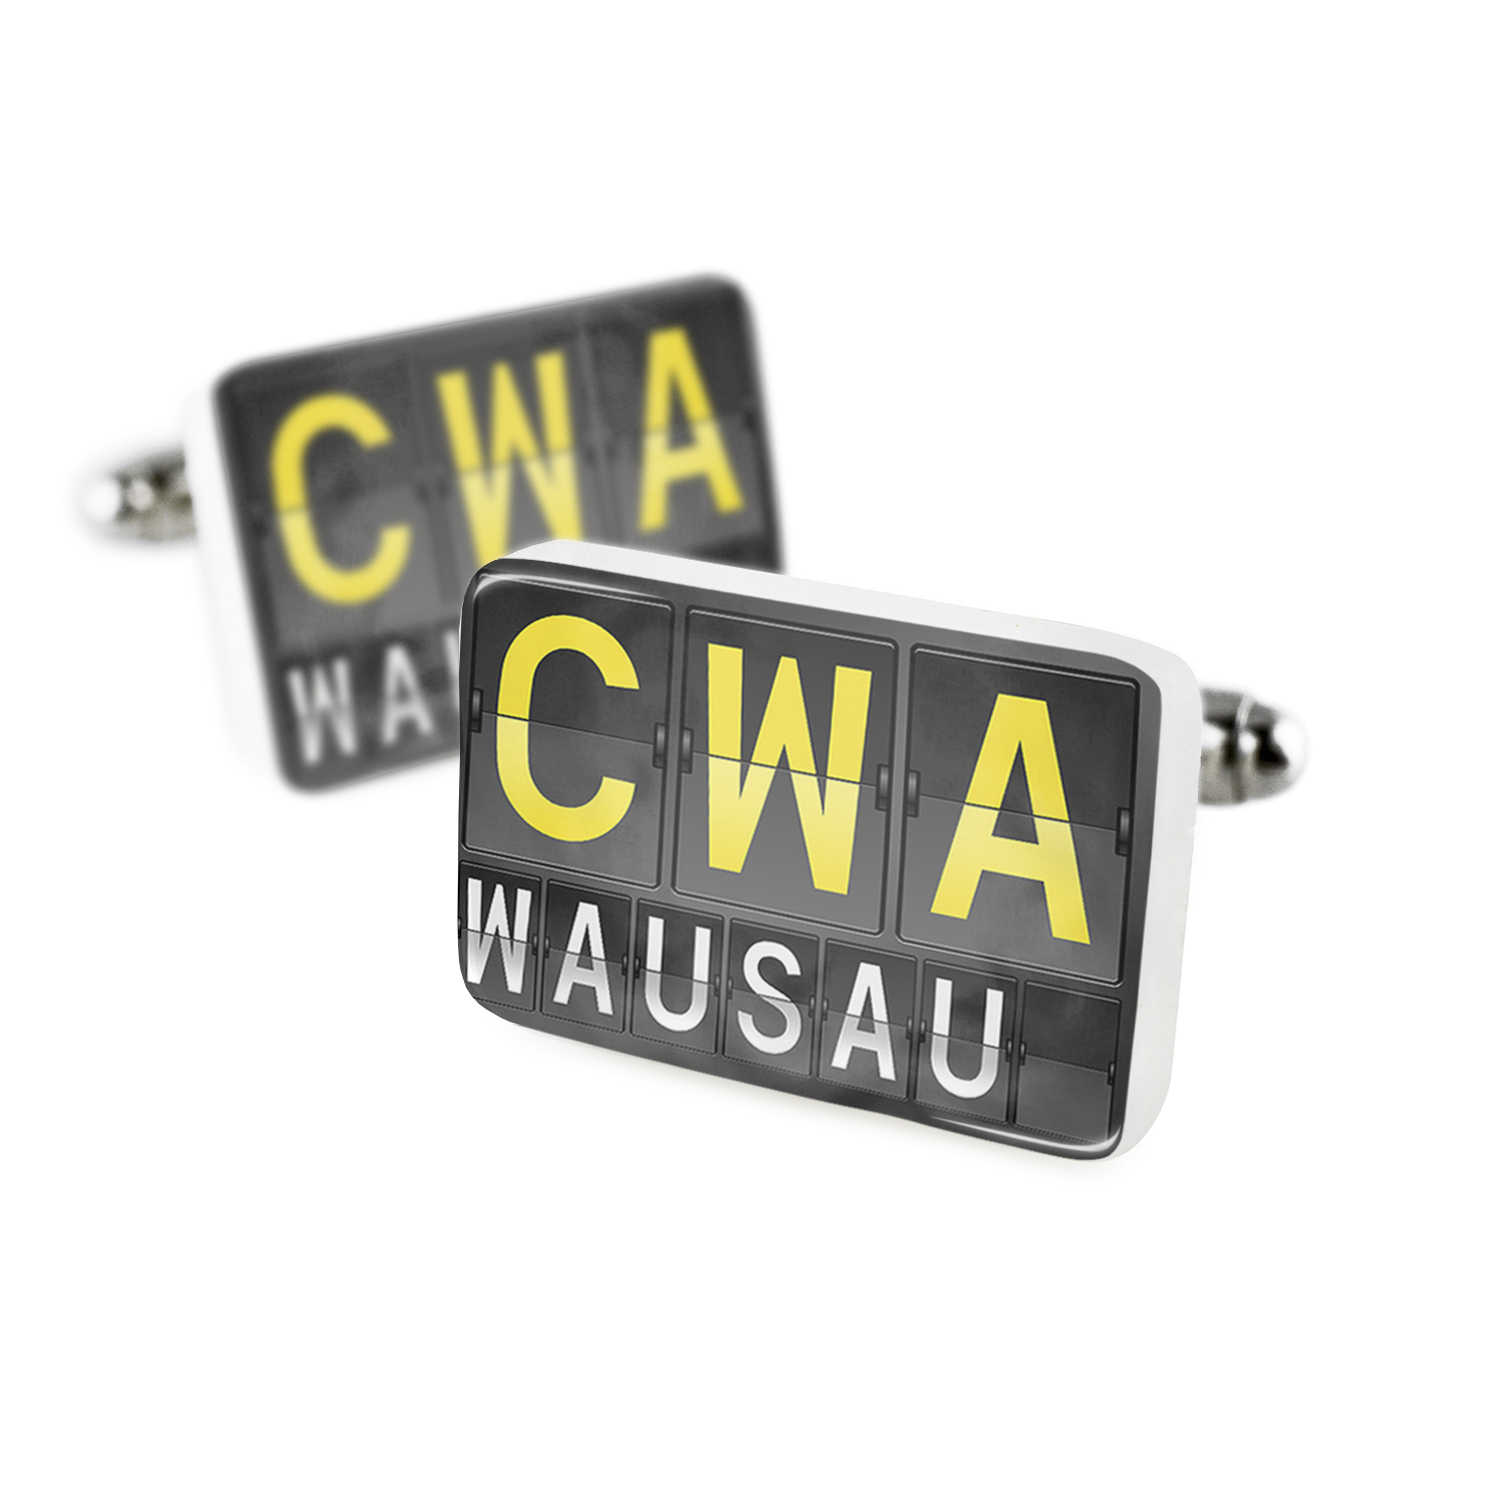 Cufflinks CWA Airport Code for WausauPorcelain Ceramic NEONBLOND